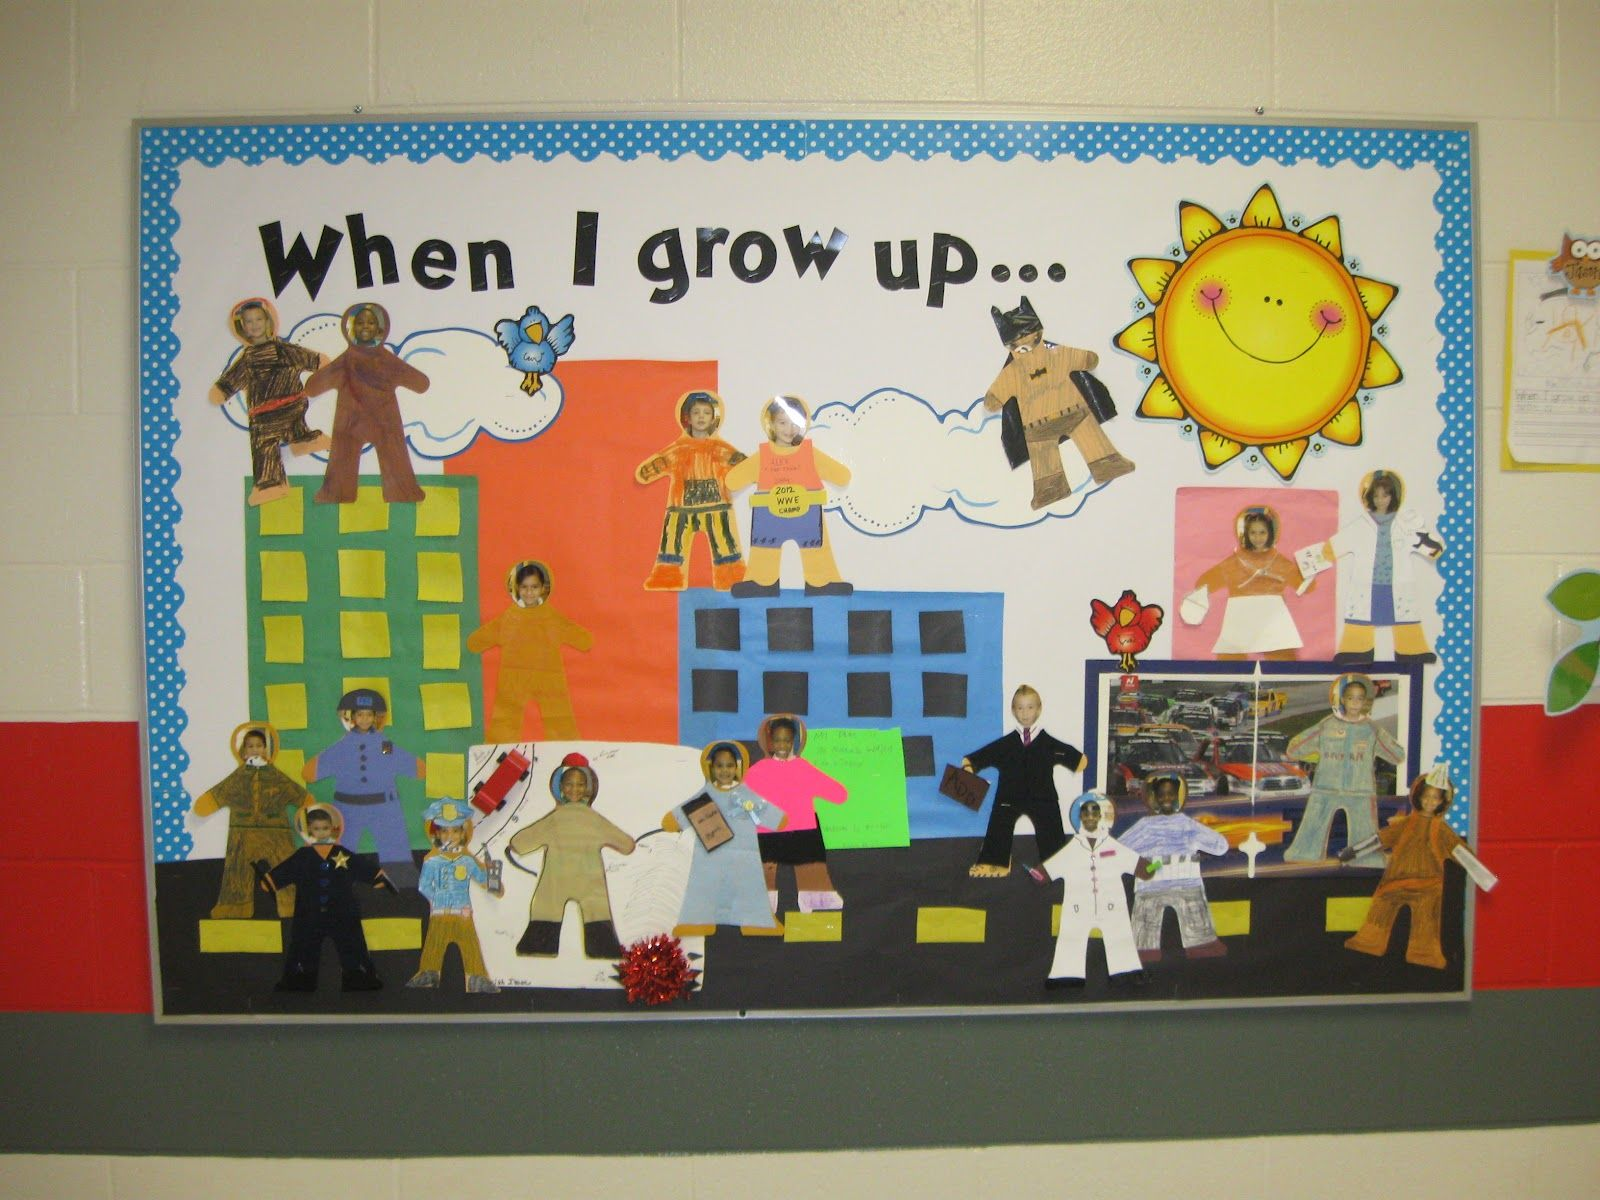 pirate bulletin boards for daycare | Our family project ... - photo#38